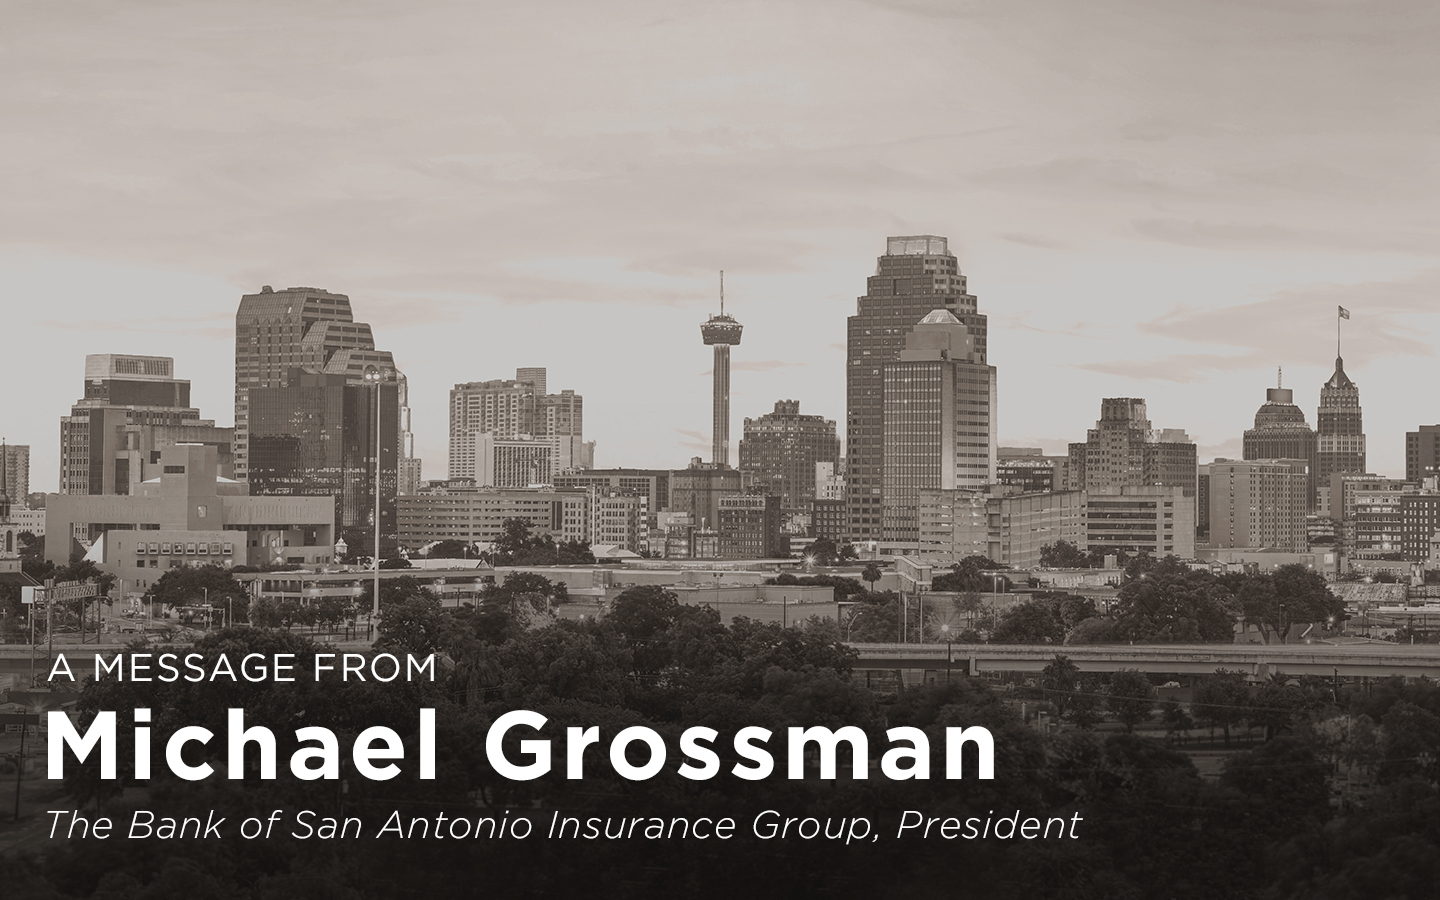 A message from Michael Grossman